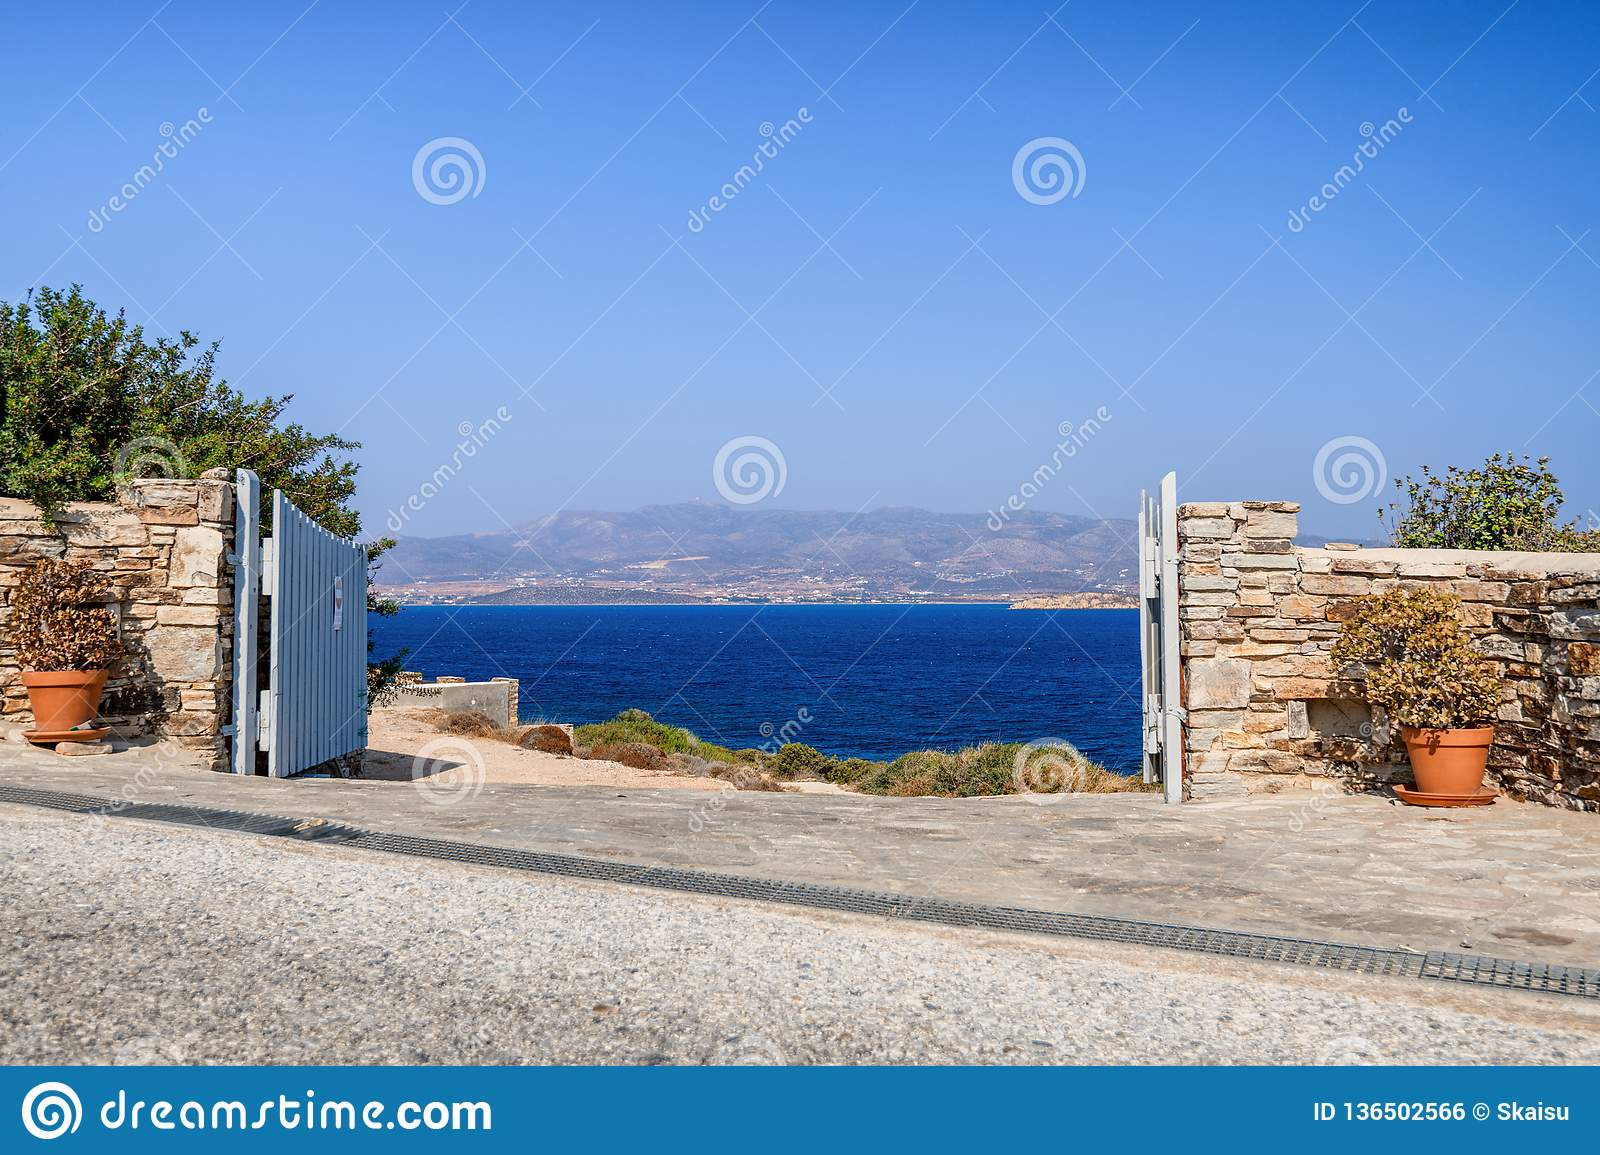 Beautiful nature of Antiparos island of Greece with crystal blue water and amazing views